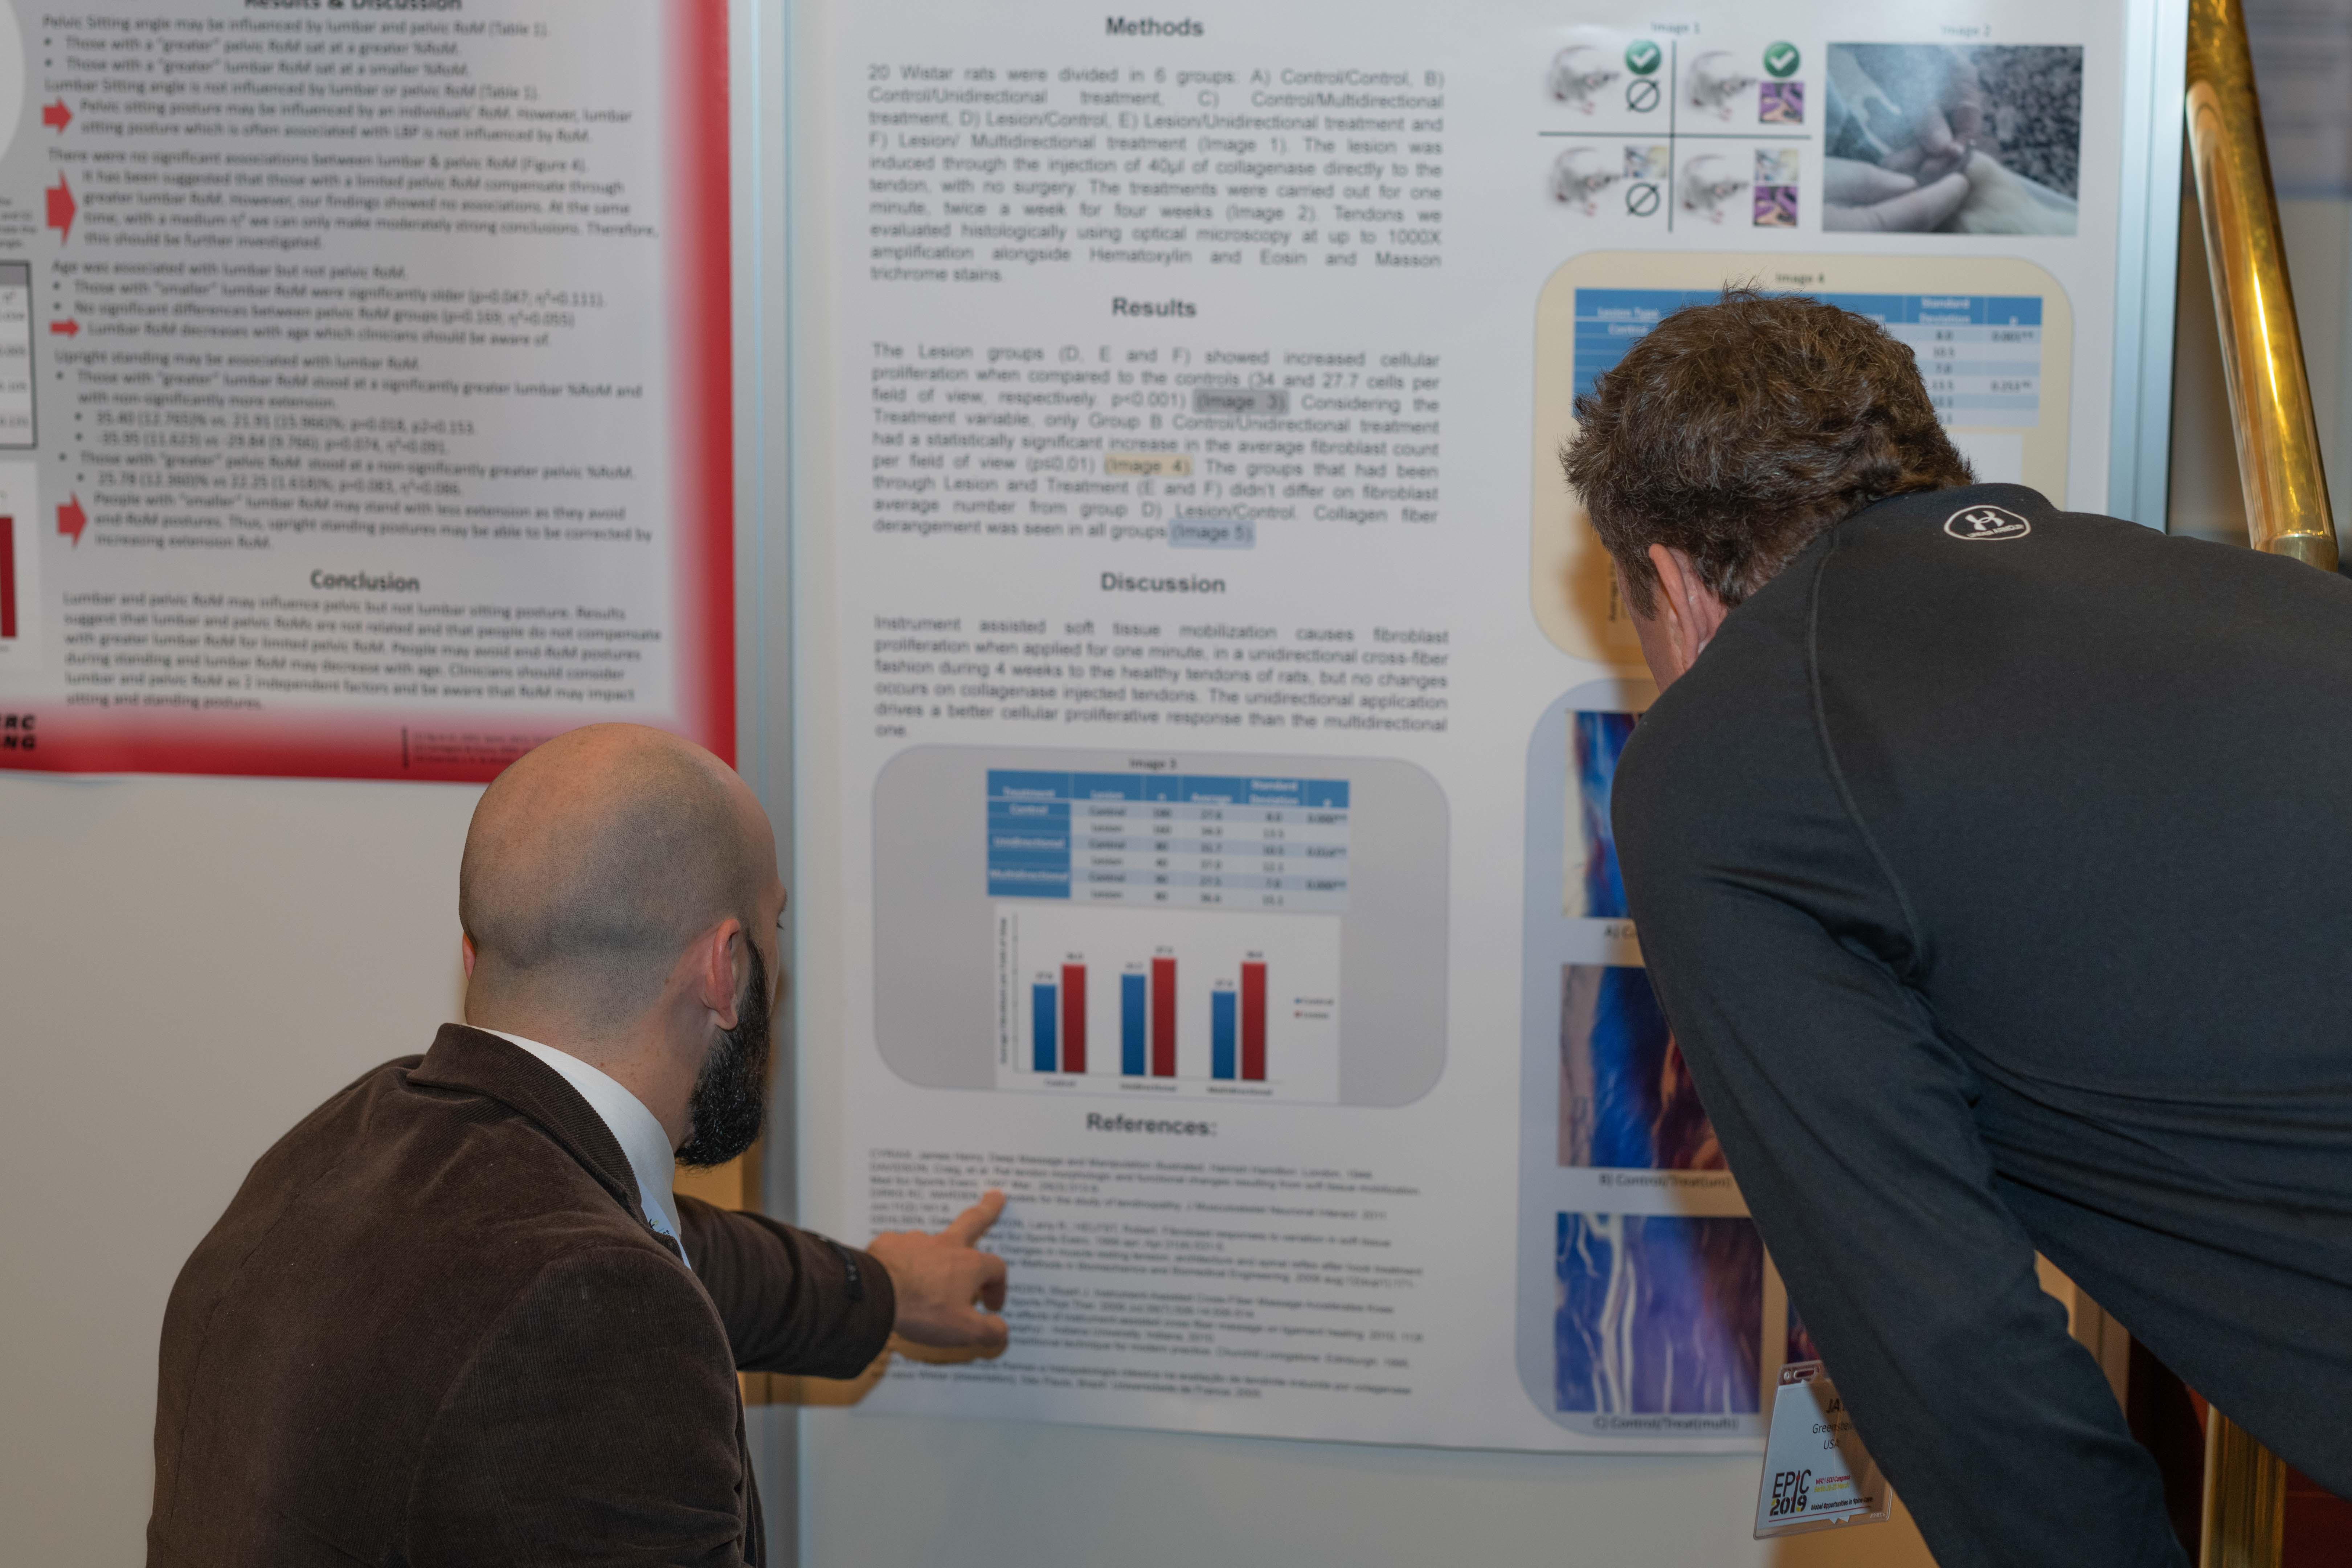 Delegates looking at a poster presentation at EPIC2019 in Berlin